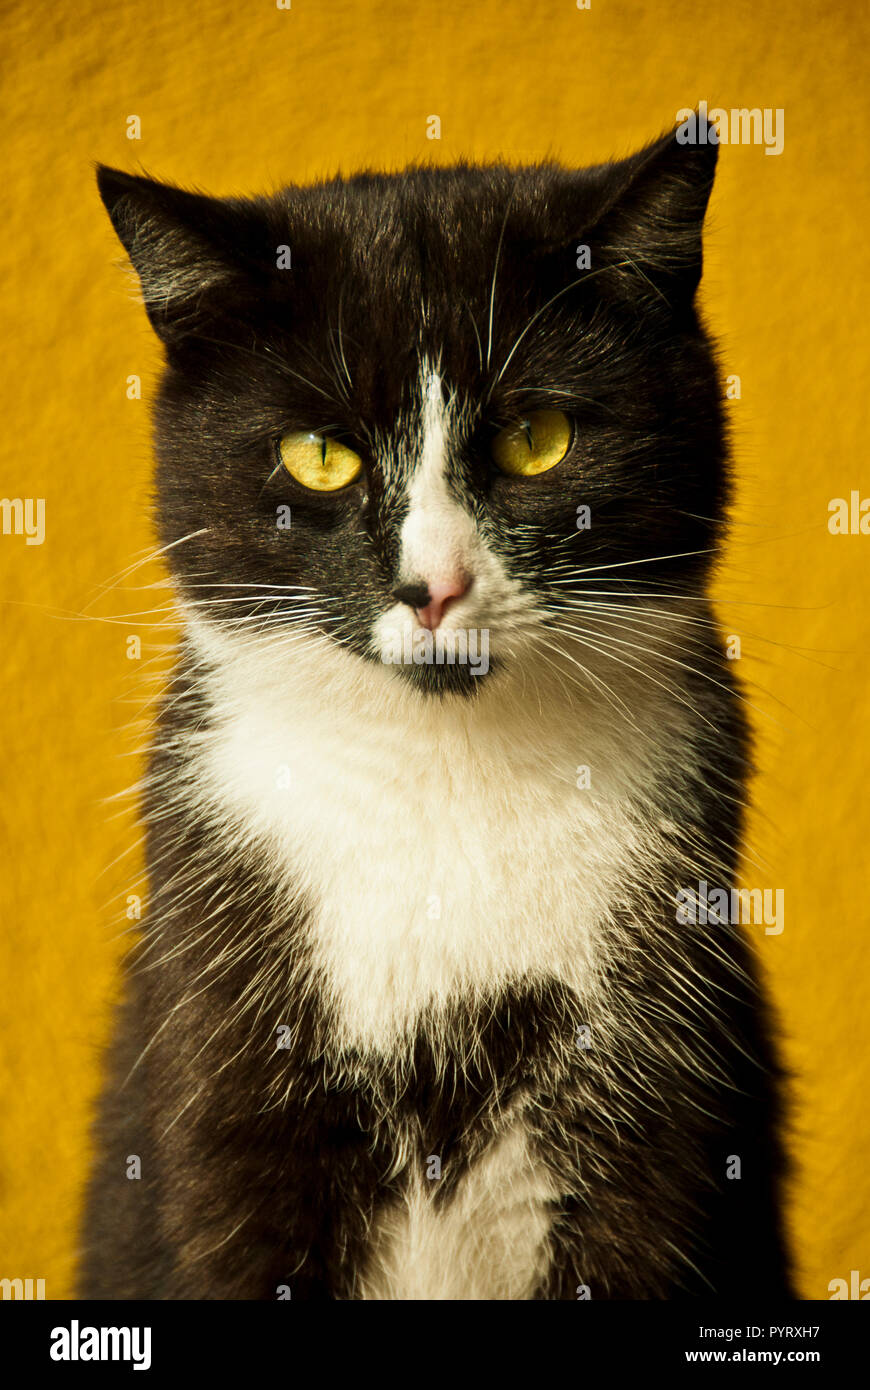 portrait of a domestic Bicolor or Tuxedo cat outdoor Stock Photo